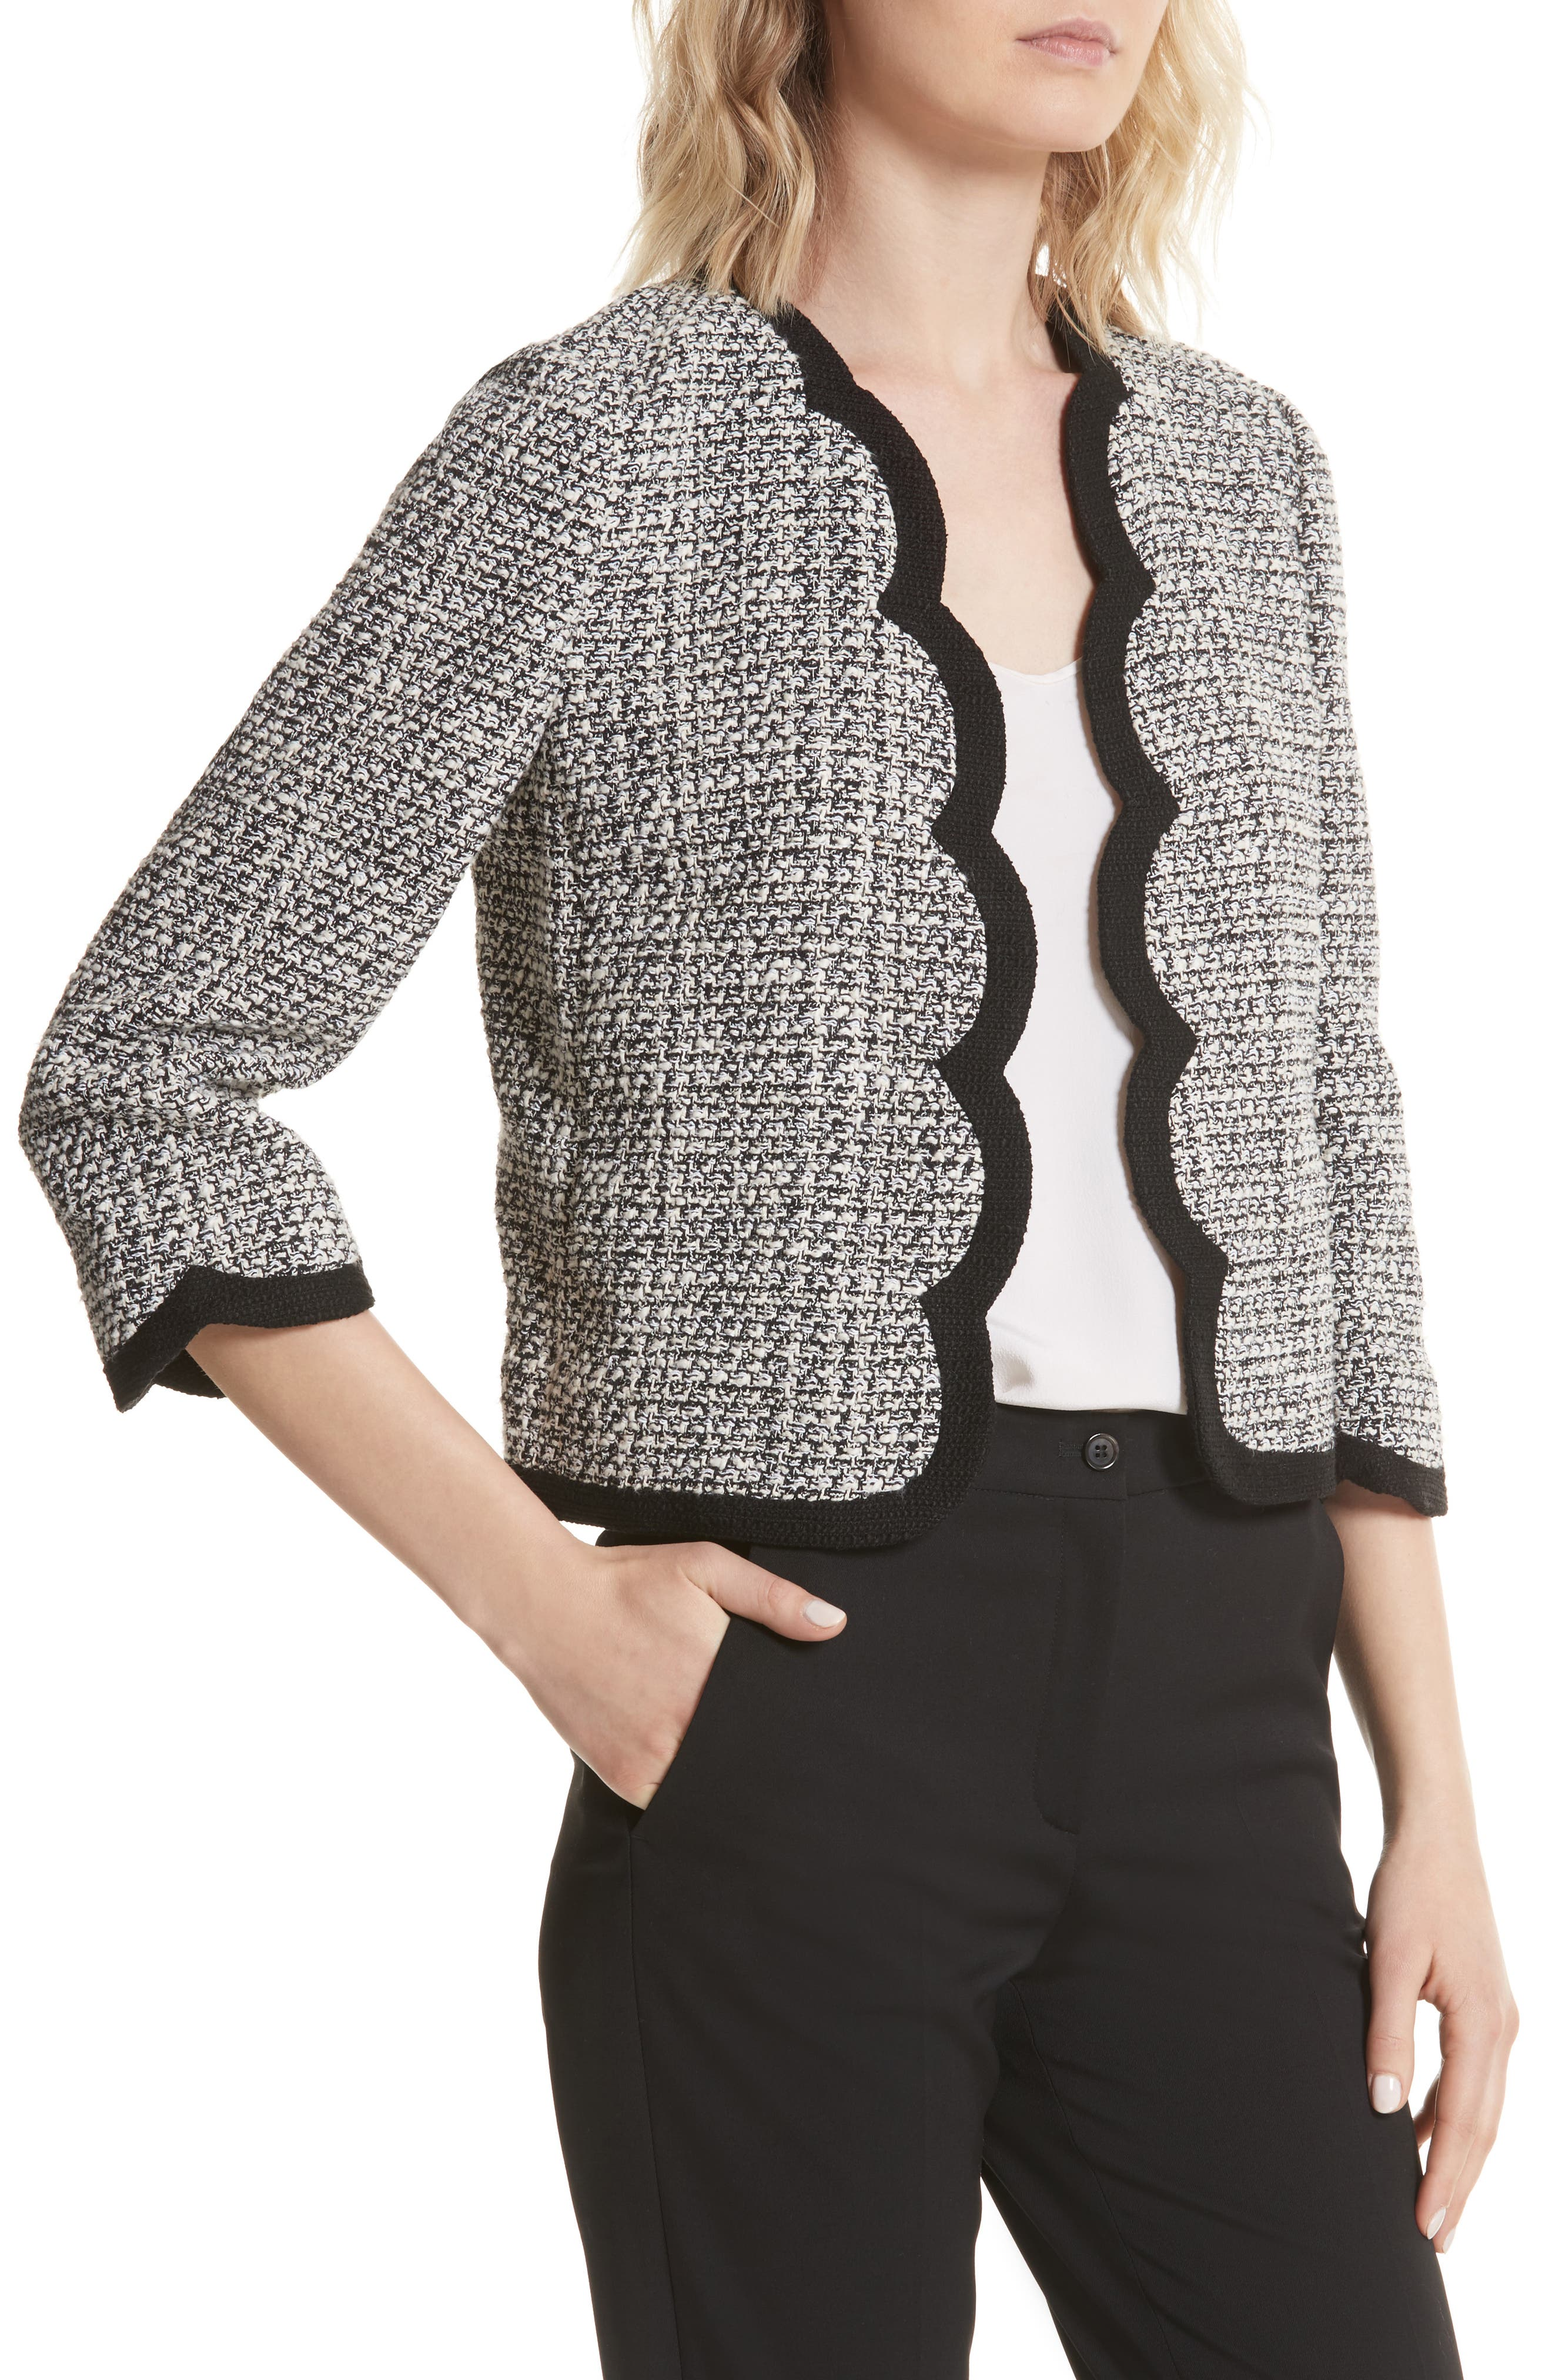 scallop tweed jacket,                             Alternate thumbnail 4, color,                             Black/ Cream